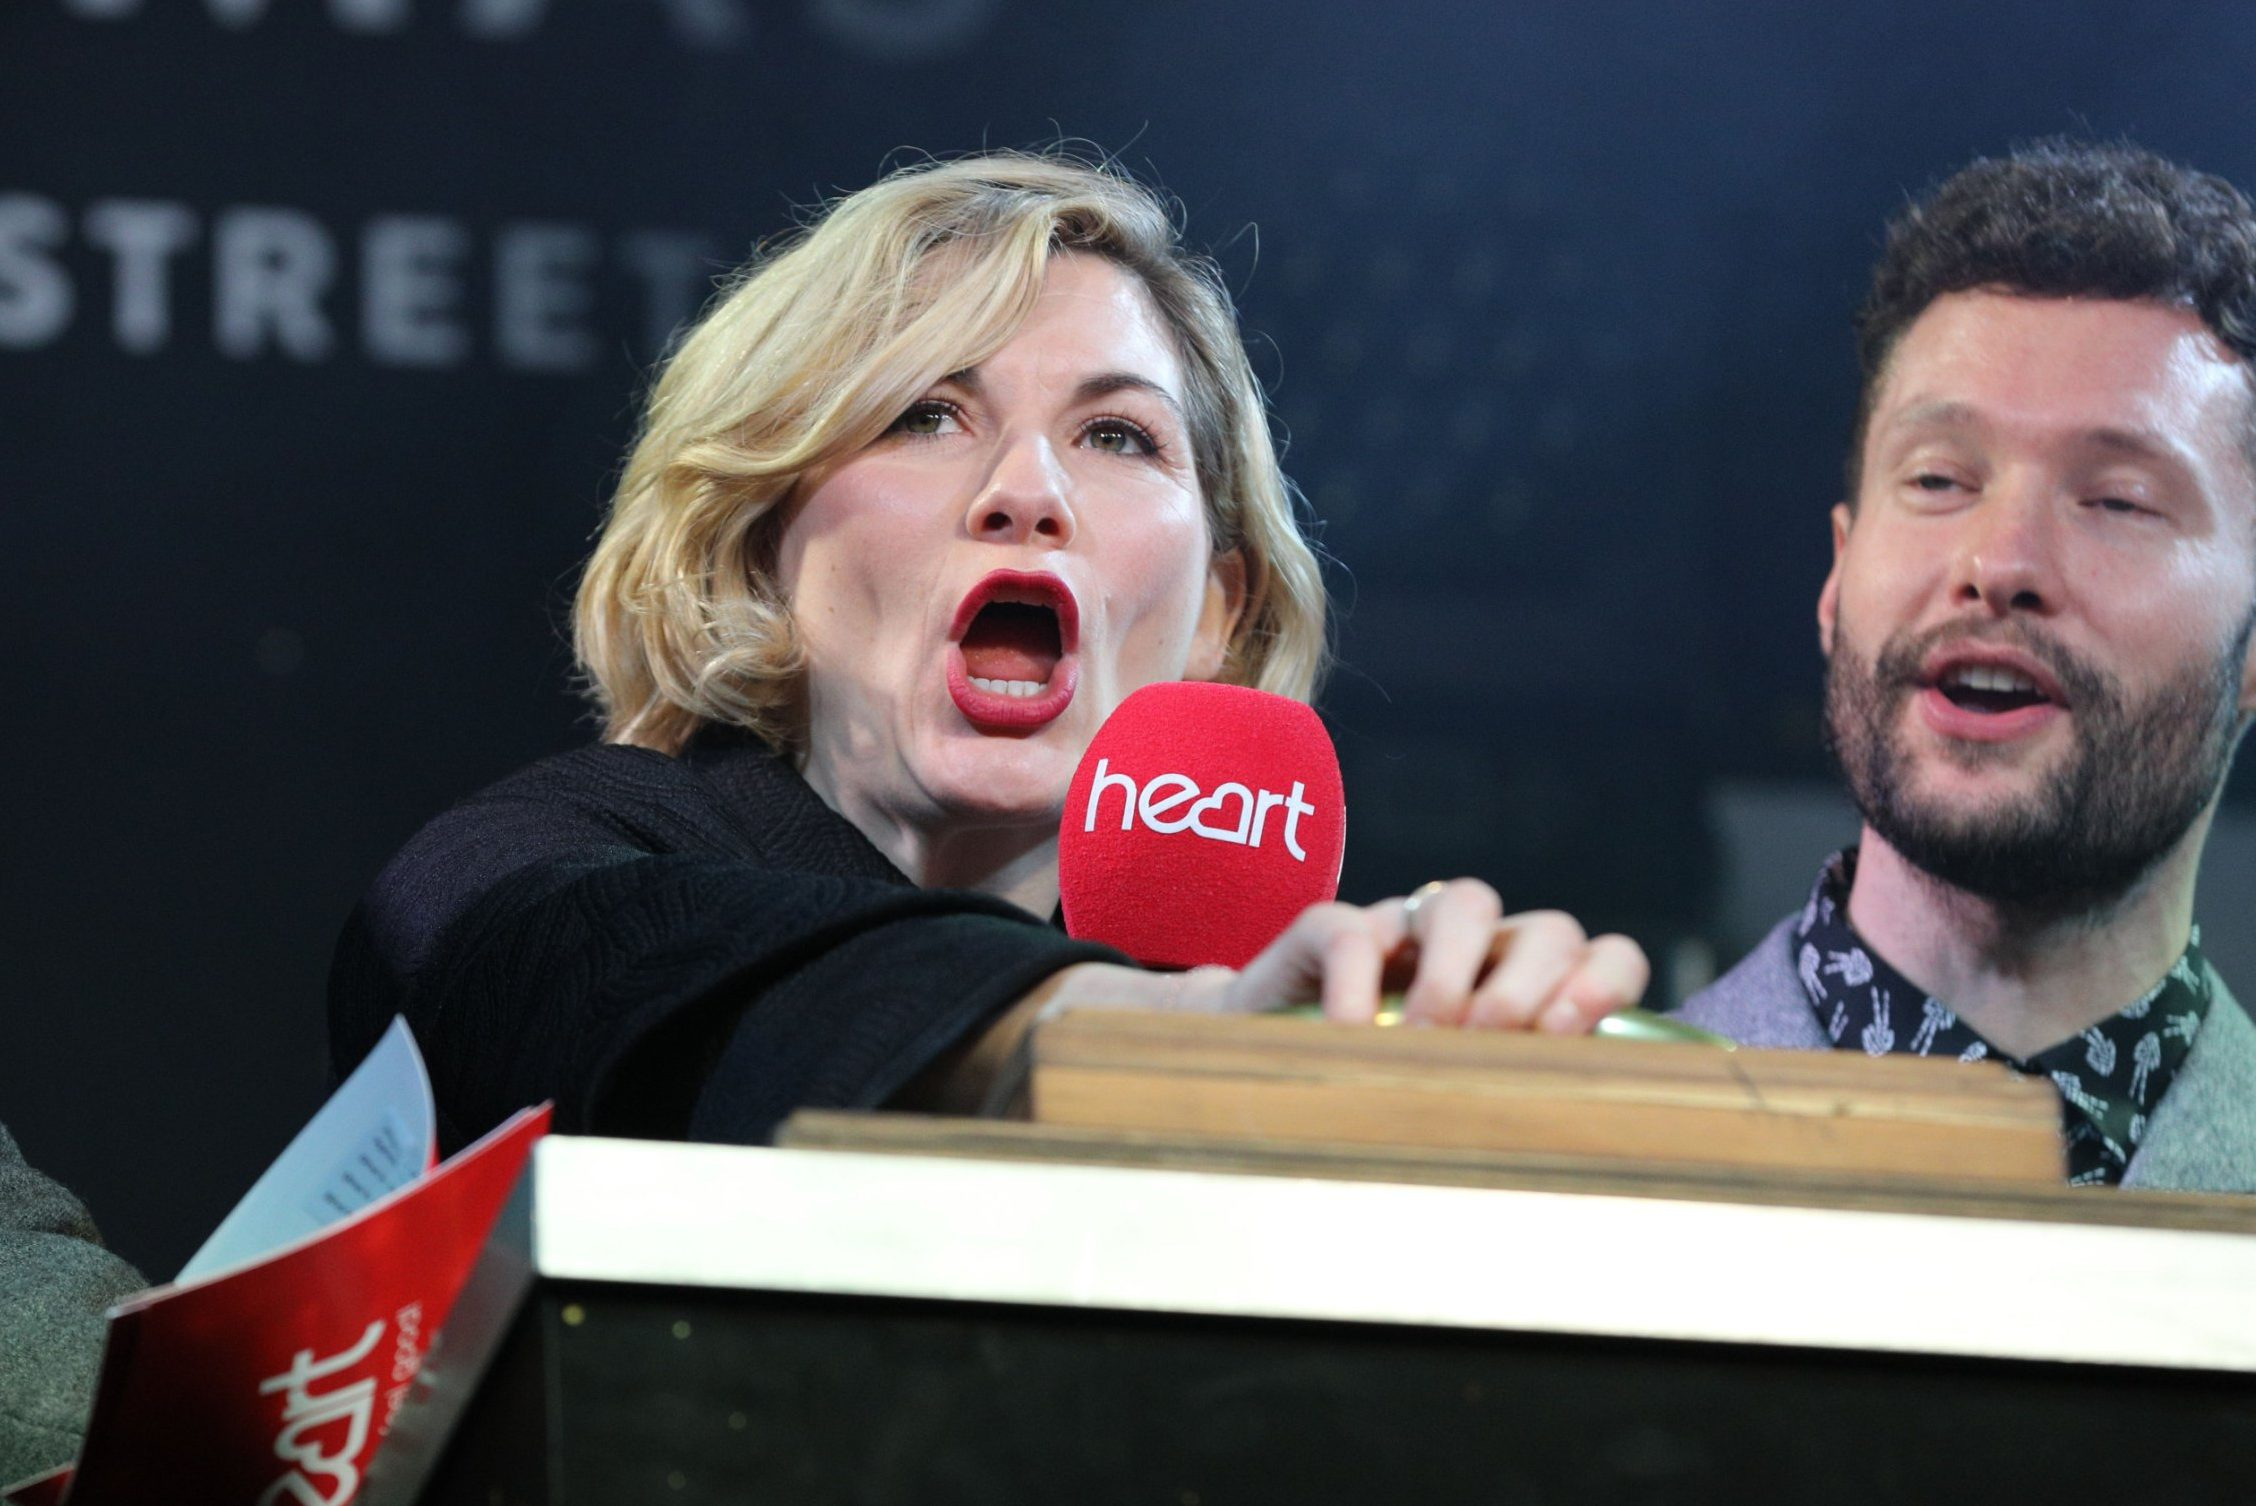 Mandatory Credit: Photo by Imageplotter/REX (9980914u) British Dr. Who actress Jodie Whittaker, Jamie Theakston and Sian Welby Regent Street Christmas Lights switch-on, London, UK - 15 Nov 2018 The official switch-on of the largest lights installation in the capital, Regent Street's 'The Spirit of Christmas' is celebrated once again in style.